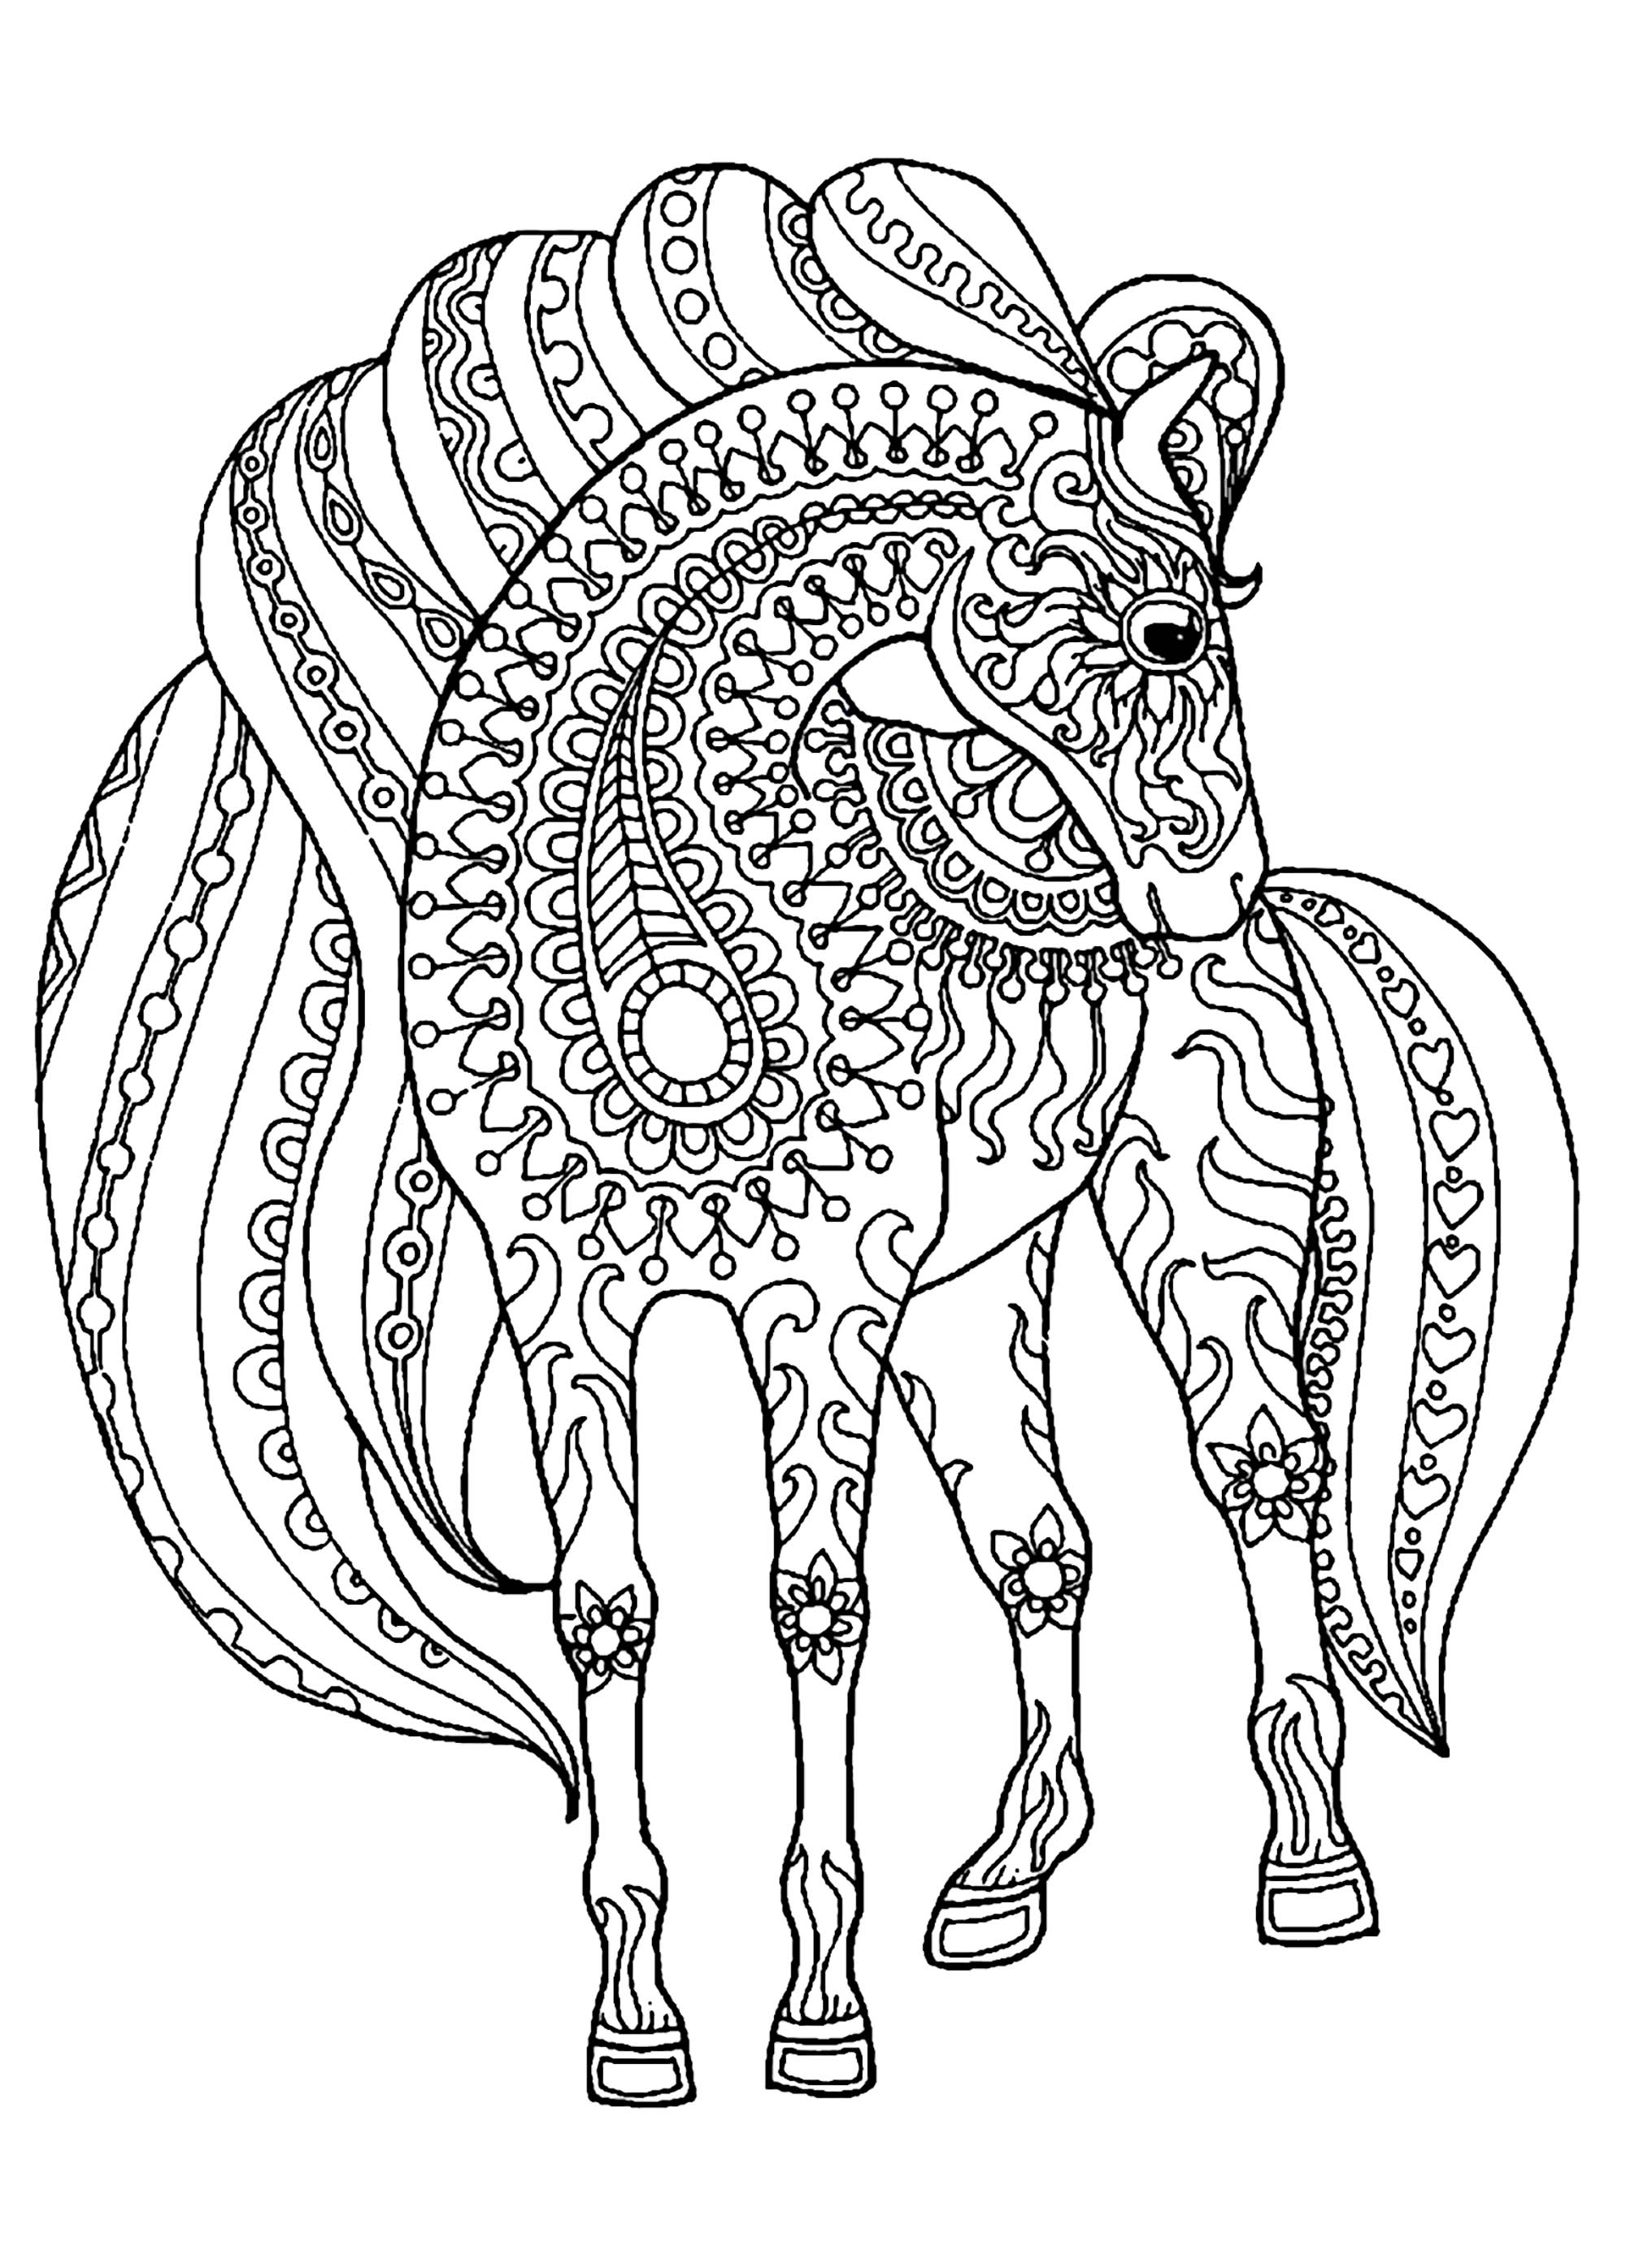 Horses - Coloring Pages for Adults